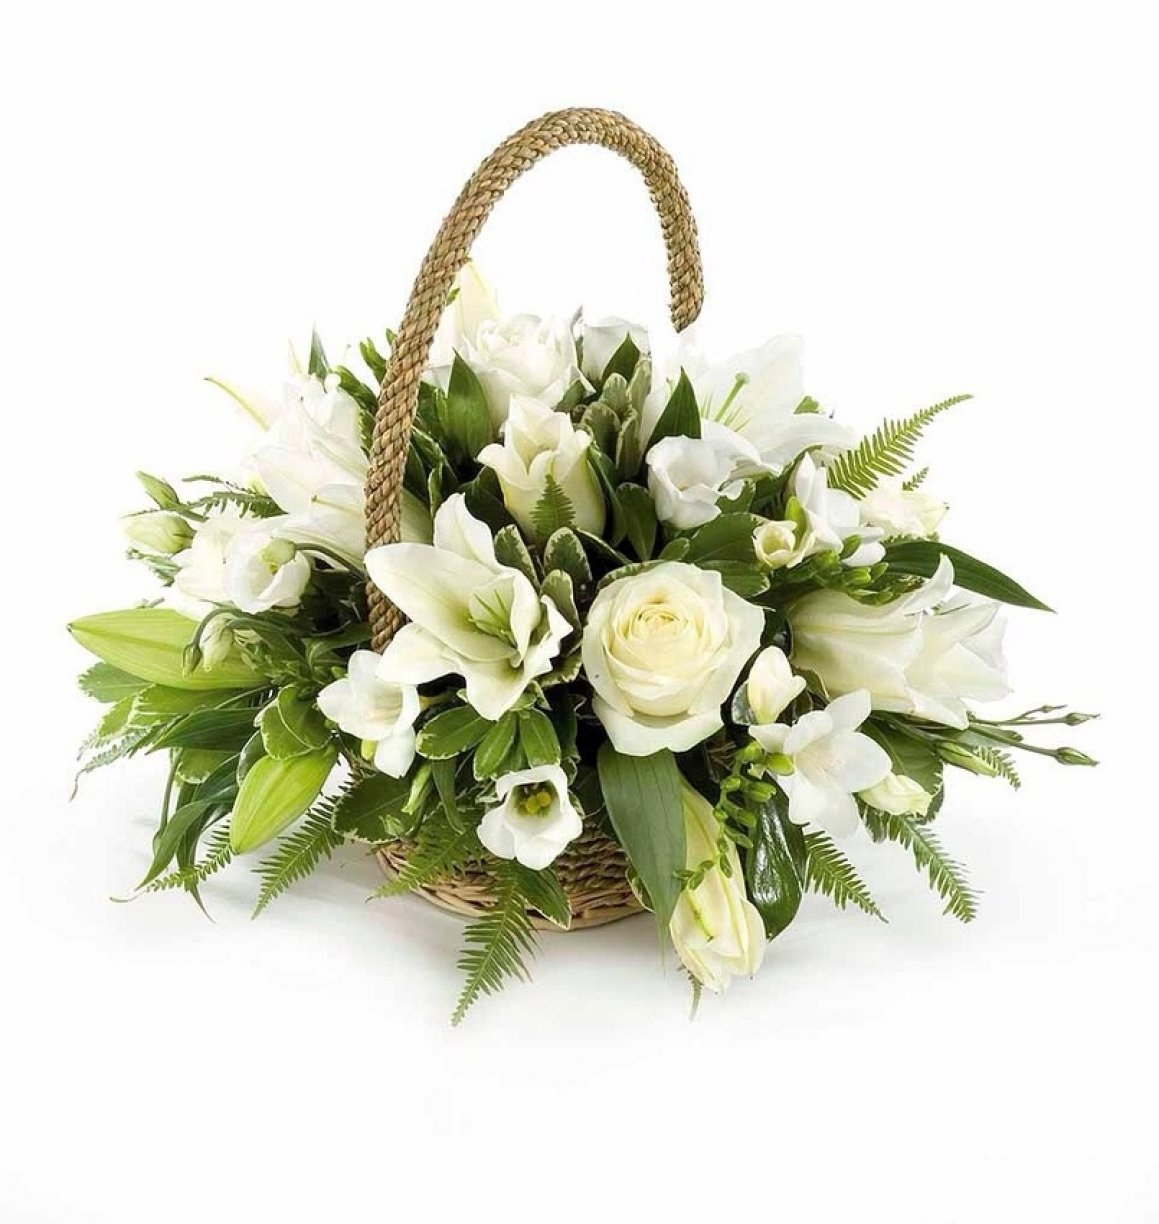 Your chosen flowers arranged in a beautiful hand held wicker basket!